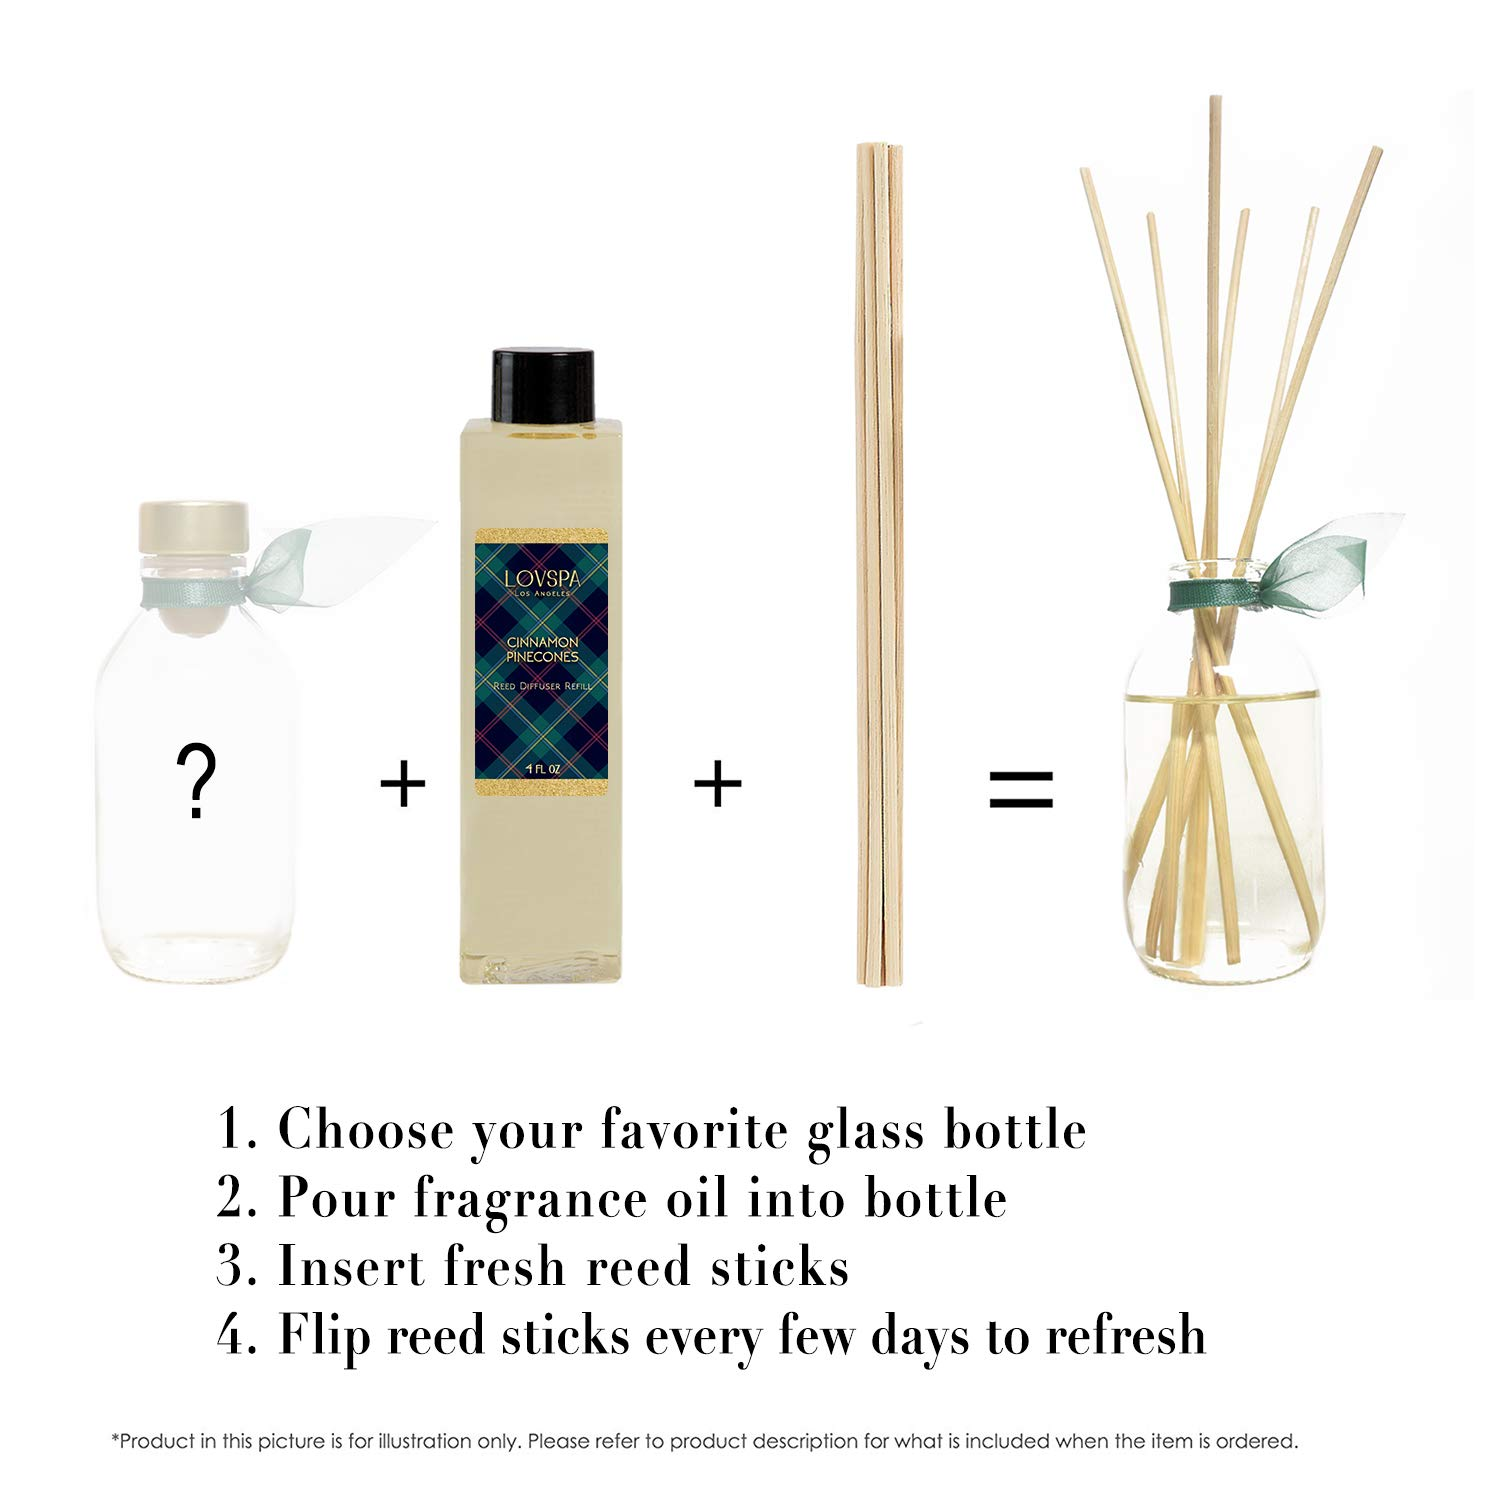 LOVSPA Cinnamon Pinecones Reed Diffuser Oil Refill with Replacement Reed Sticks Fragrances | Woody Pinecones, Fir Needles Cinnamon & Cloves | Replenish You Existing Scent Diffuser by LOVSPA (Image #2)